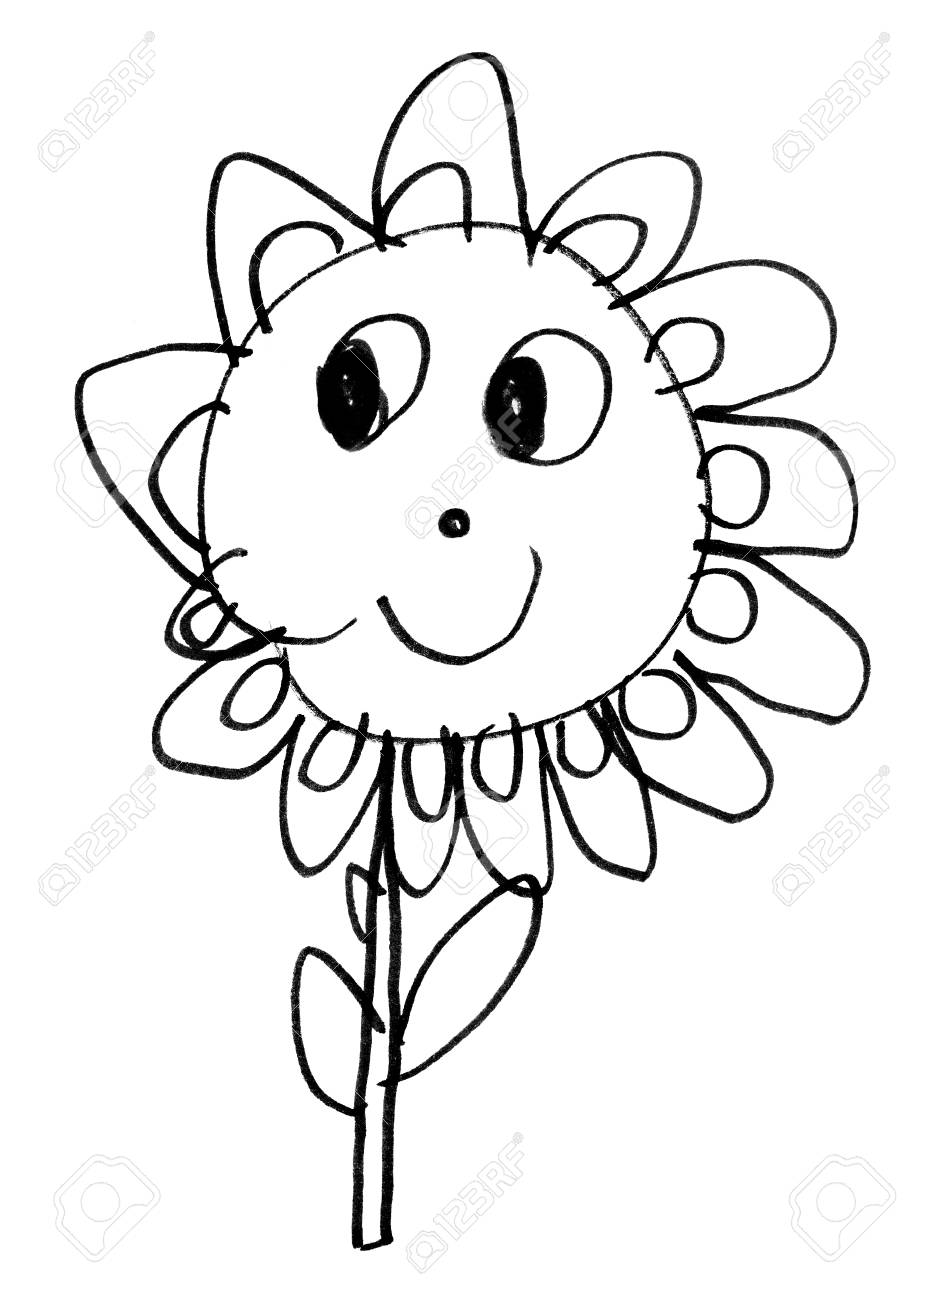 Original Child S Drawing Of Flower With Black Marker On White